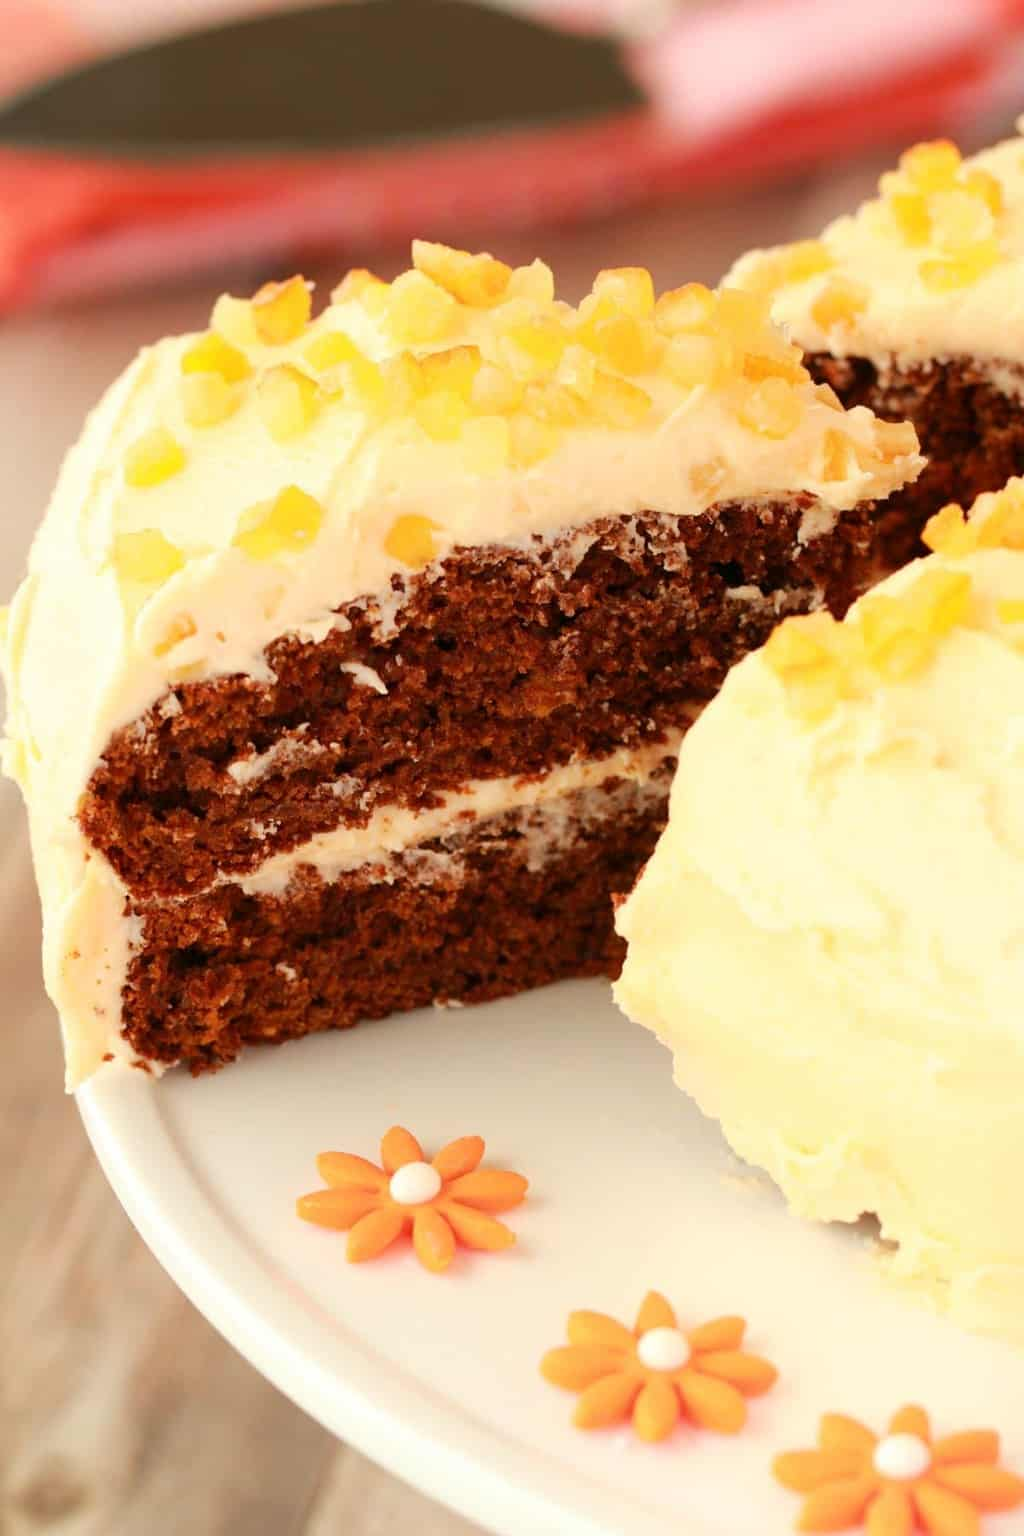 Vegan Gingerbread Cake with Orange Frosting